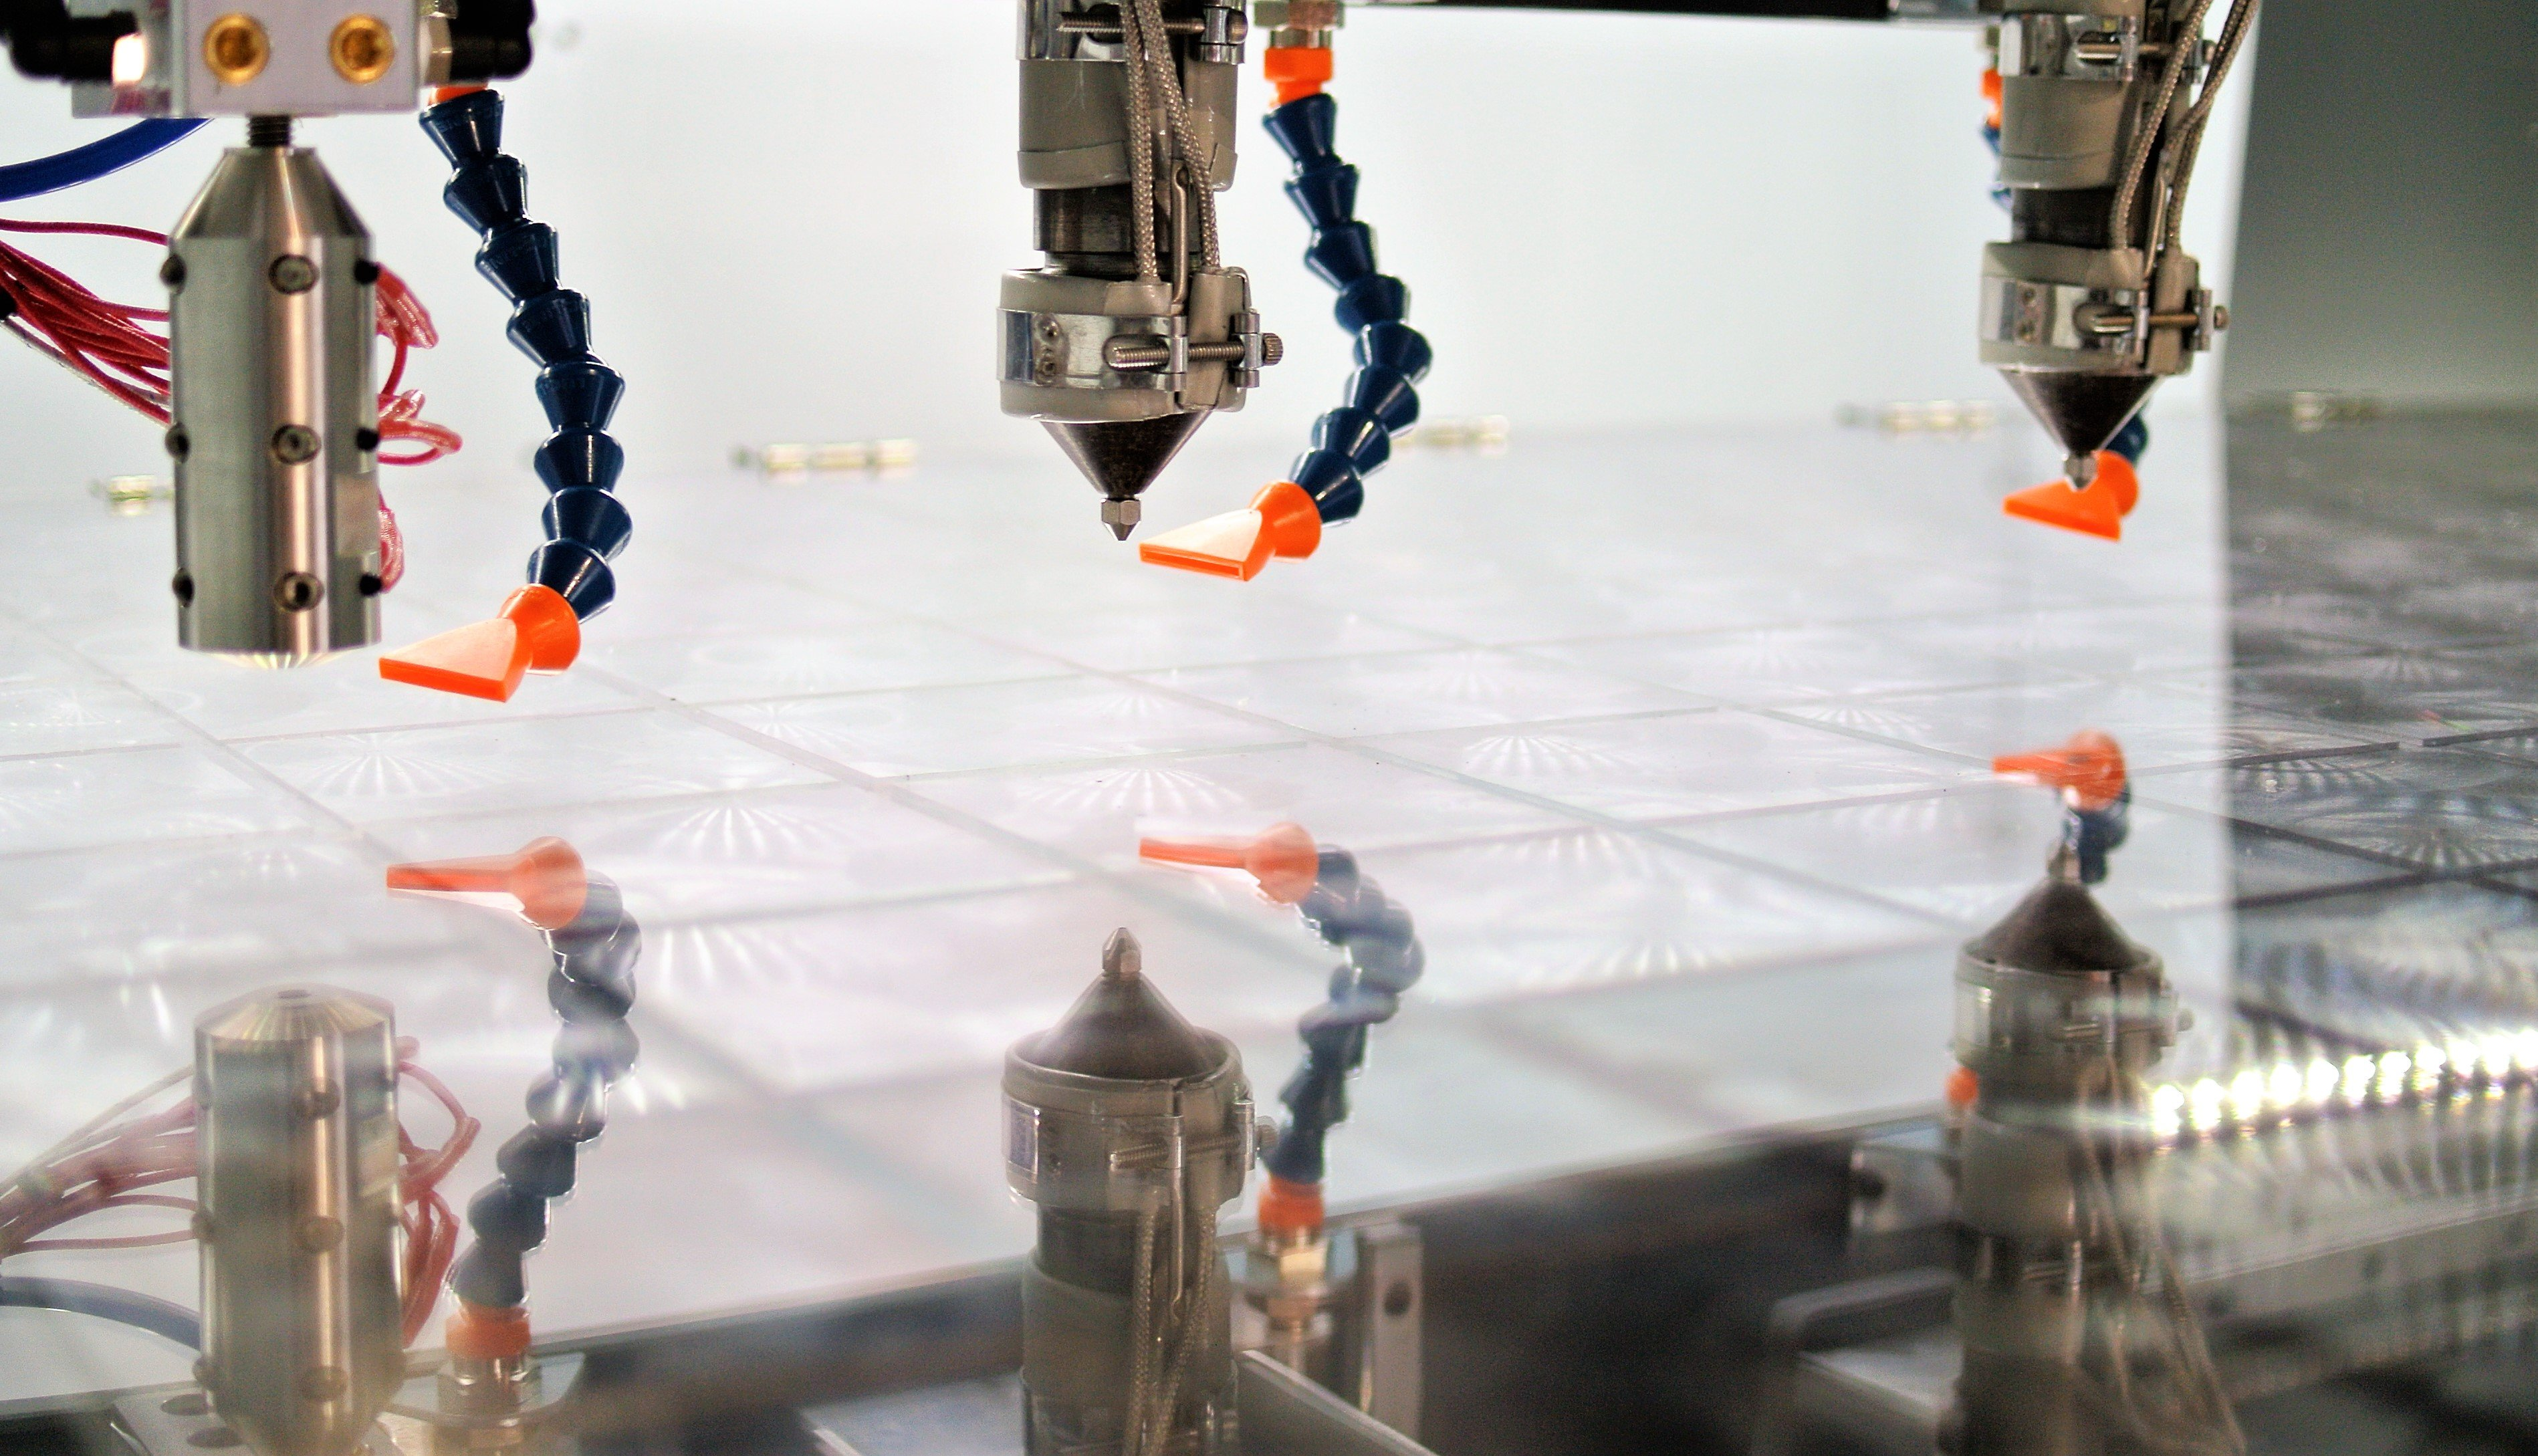 The newly-launched PP pellets are the first materials to be designed specifically for Titan's Atlas 3D printing process (pictured). Photo via Titan Robotics.